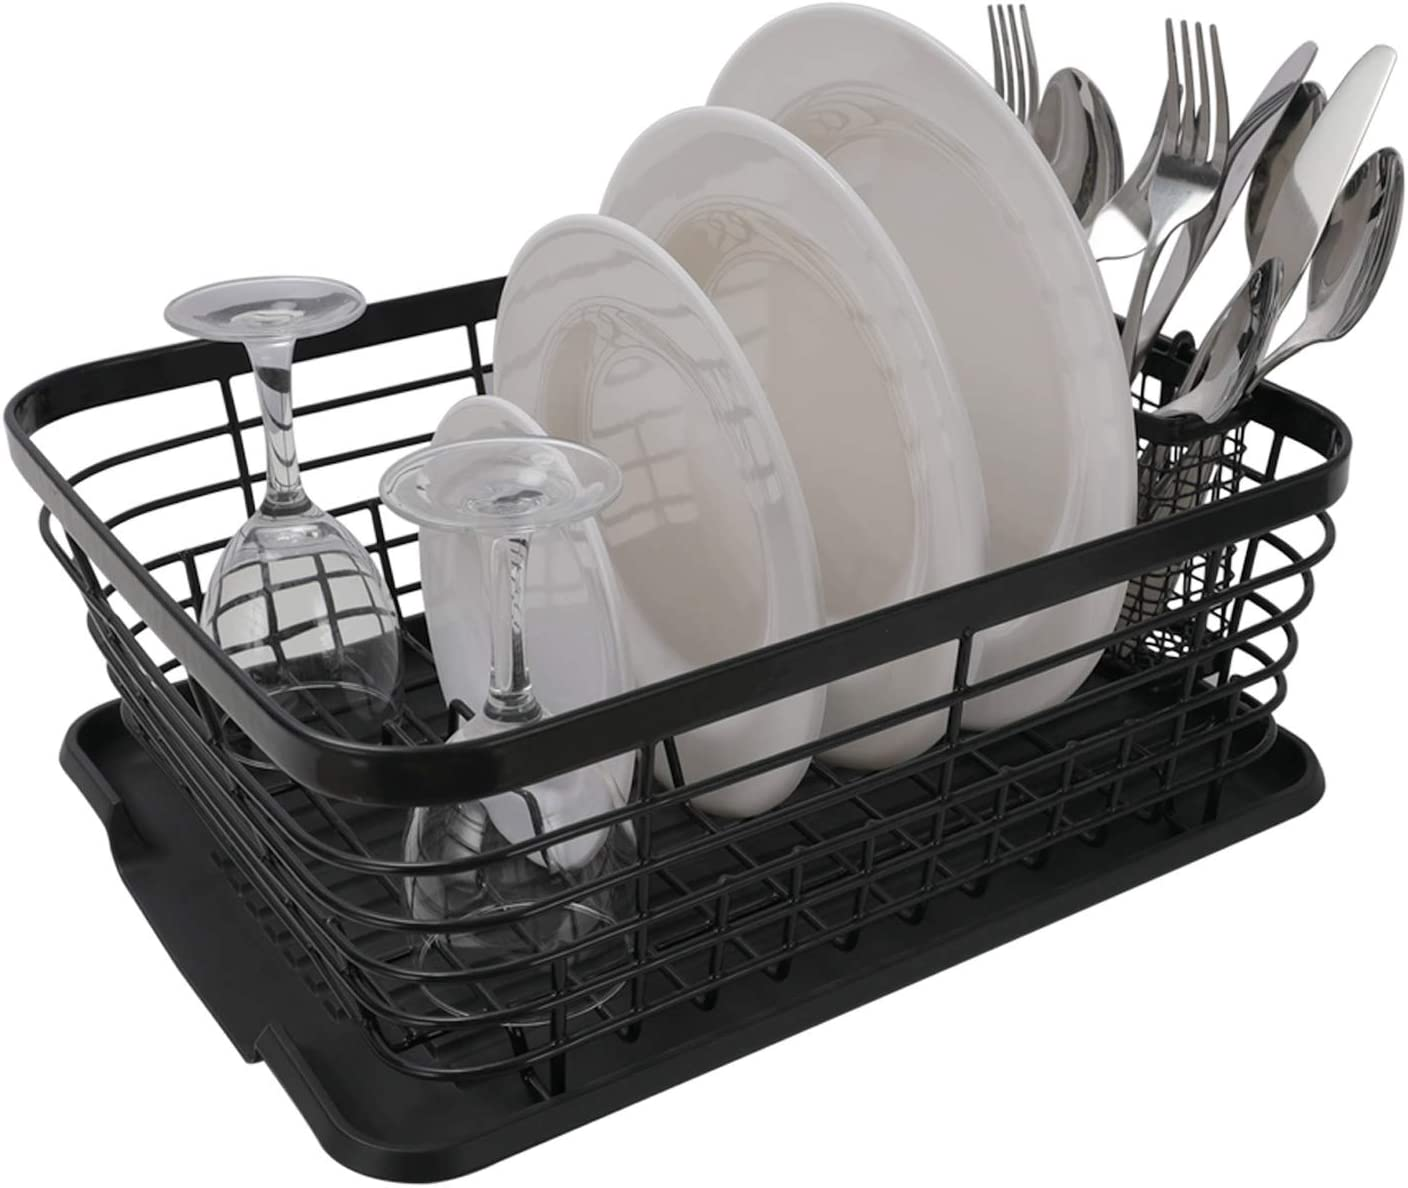 Esylife Kitchen Sink Dish Drainer Drying Rack With Drip Tray And Full Mesh Silverware Basket Black Amazon Co Uk Home Kitchen